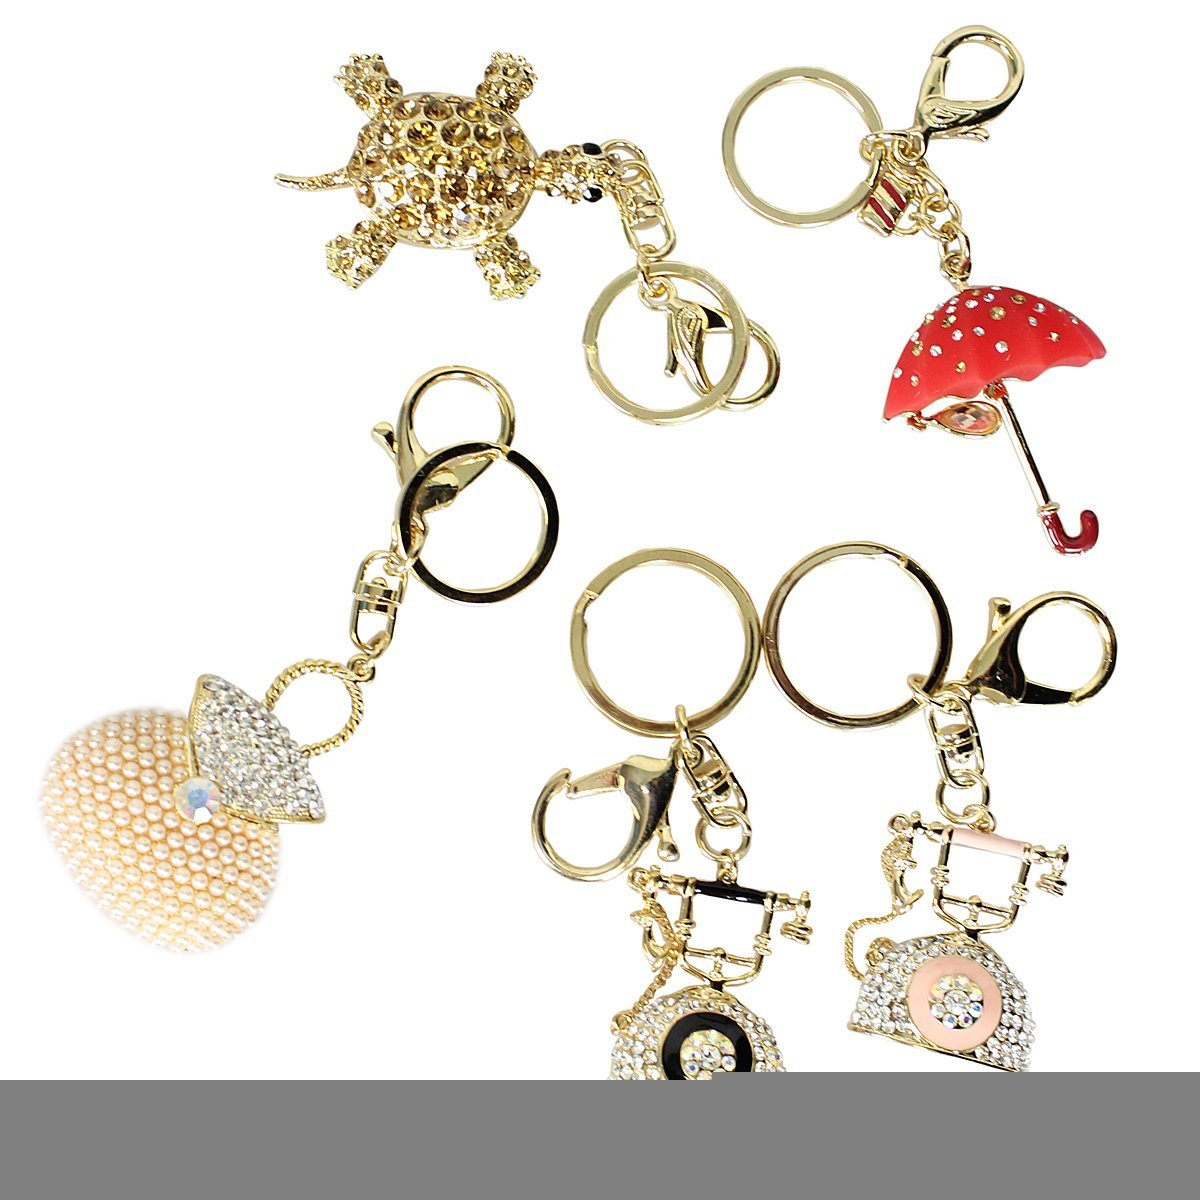 5-Pack Assorted Keychain Purse Charm Multi Purpose-Turtle, Telephones, Umbrel...